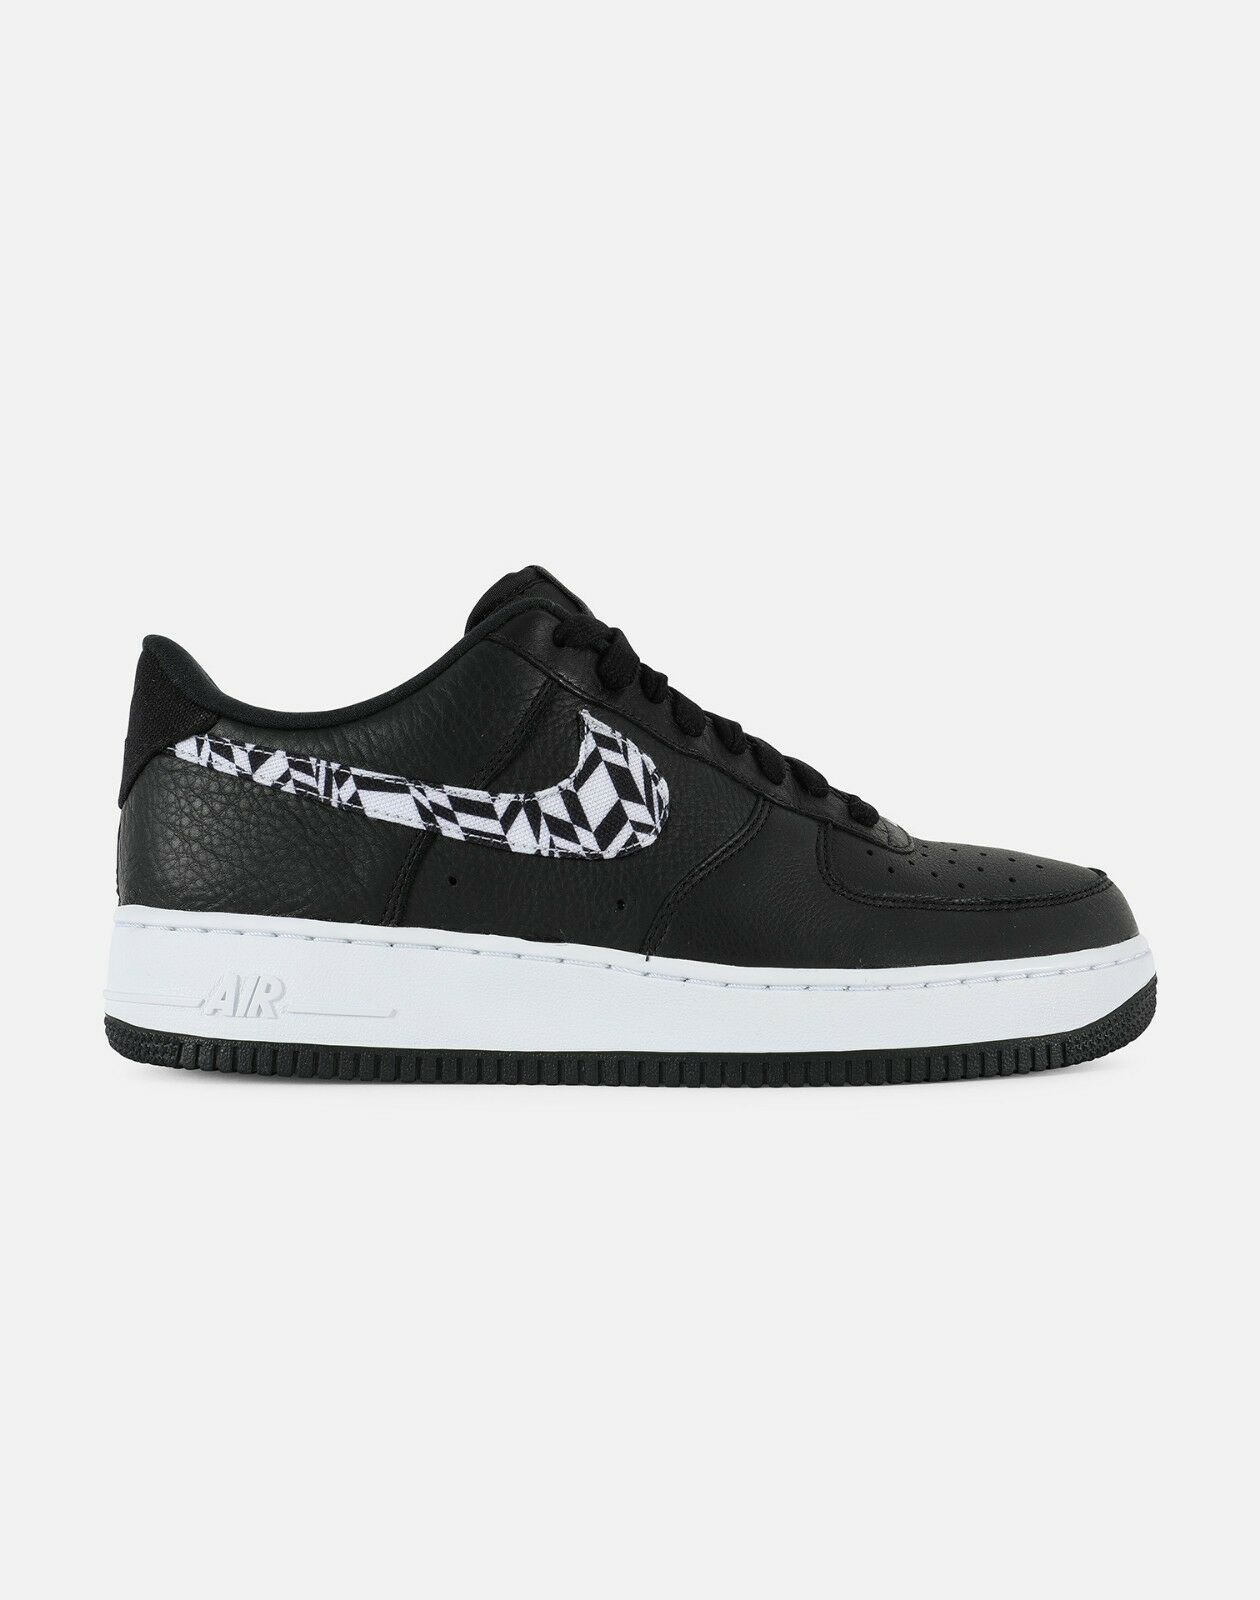 Nike Air Force 1 AOP Premium AQ4131 AQ4131 AQ4131 001 Black White Men SZ 7.5 - 13 189d1d